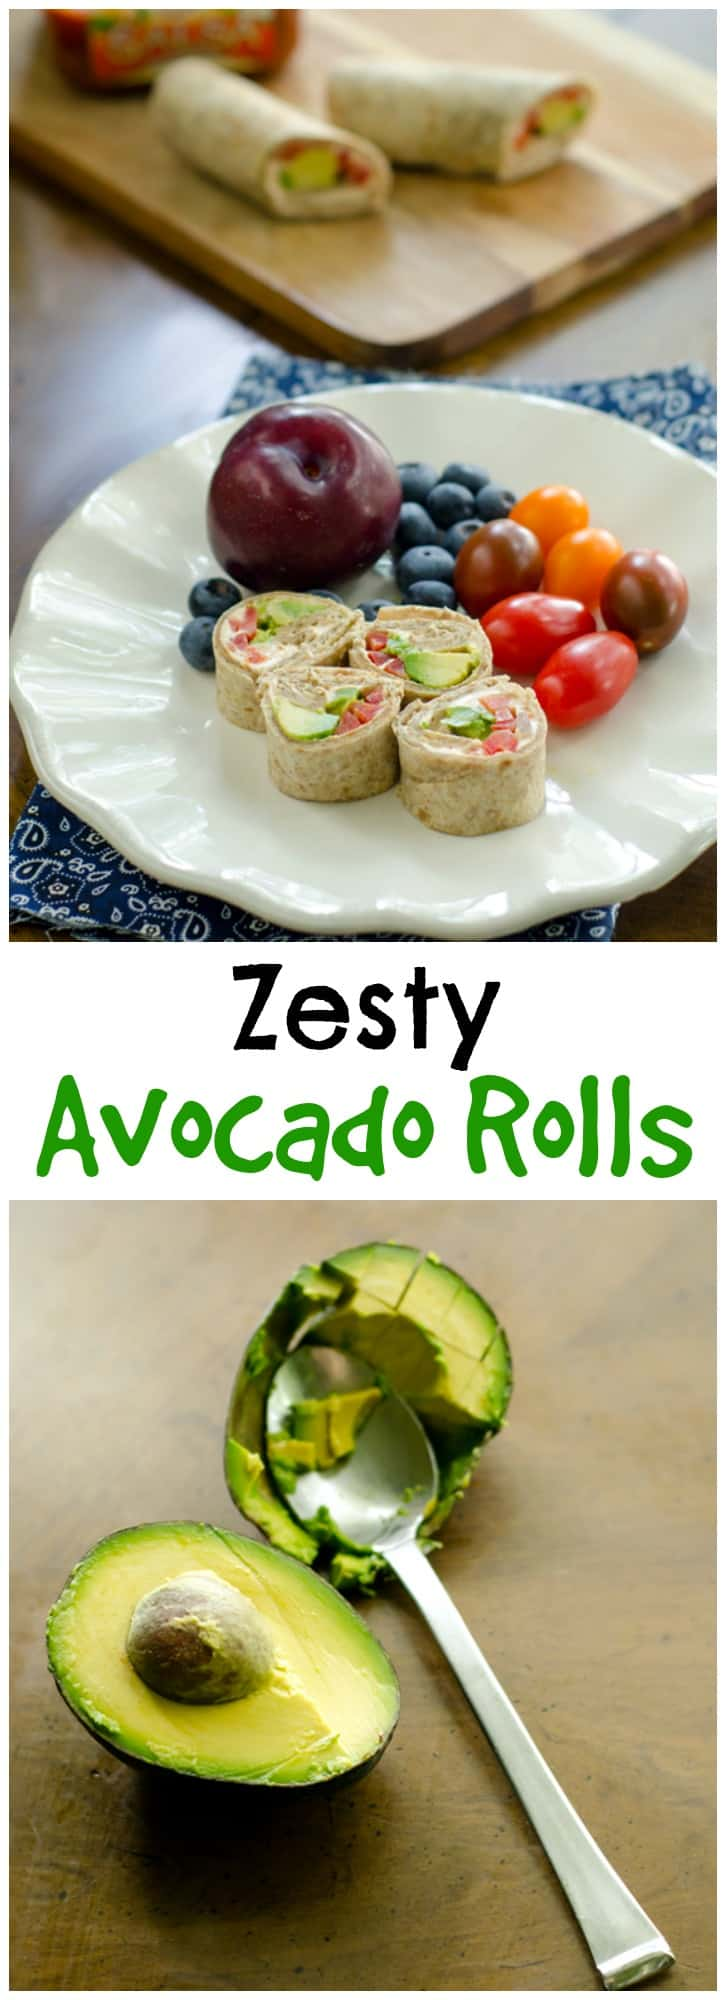 These avocado rolls are easy to make and beyond delicious. Being fish free, they make the perfect easy lunch!